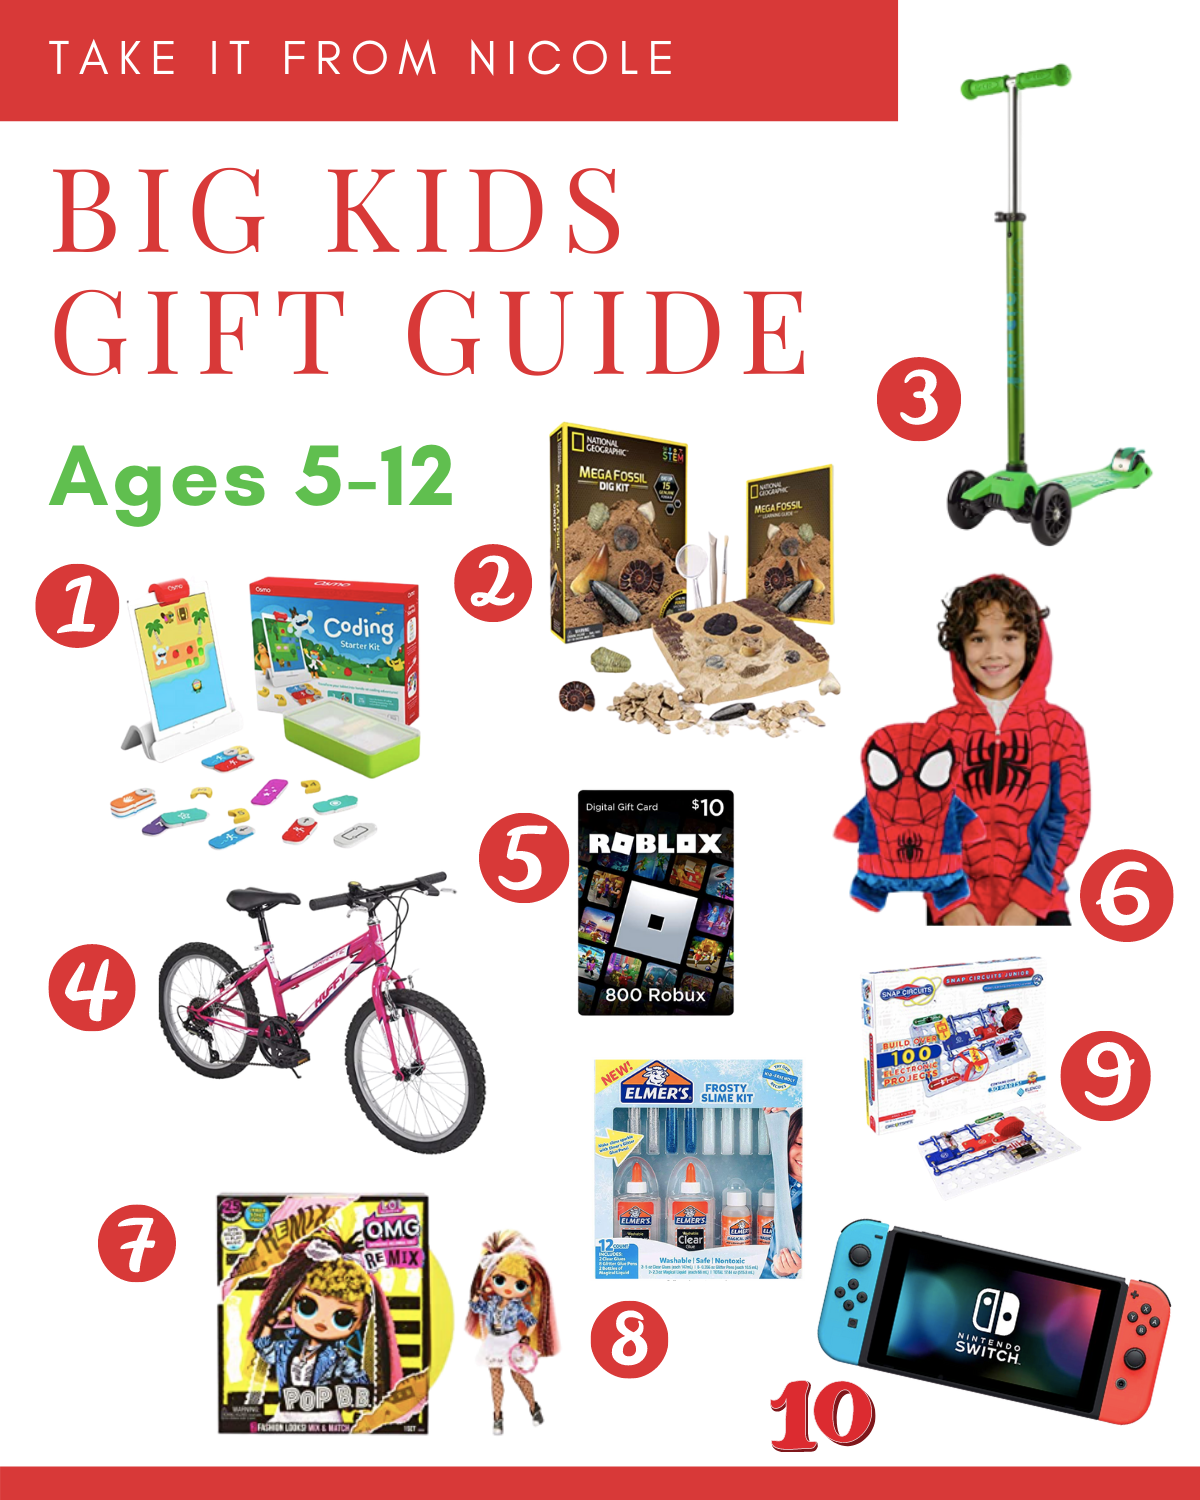 Christmas and holiday gift guide for kids ages 5-12. I tried to get a good mix of electronic and screen free ideas along with a wide range in price points. Ideas for both boys and girls.